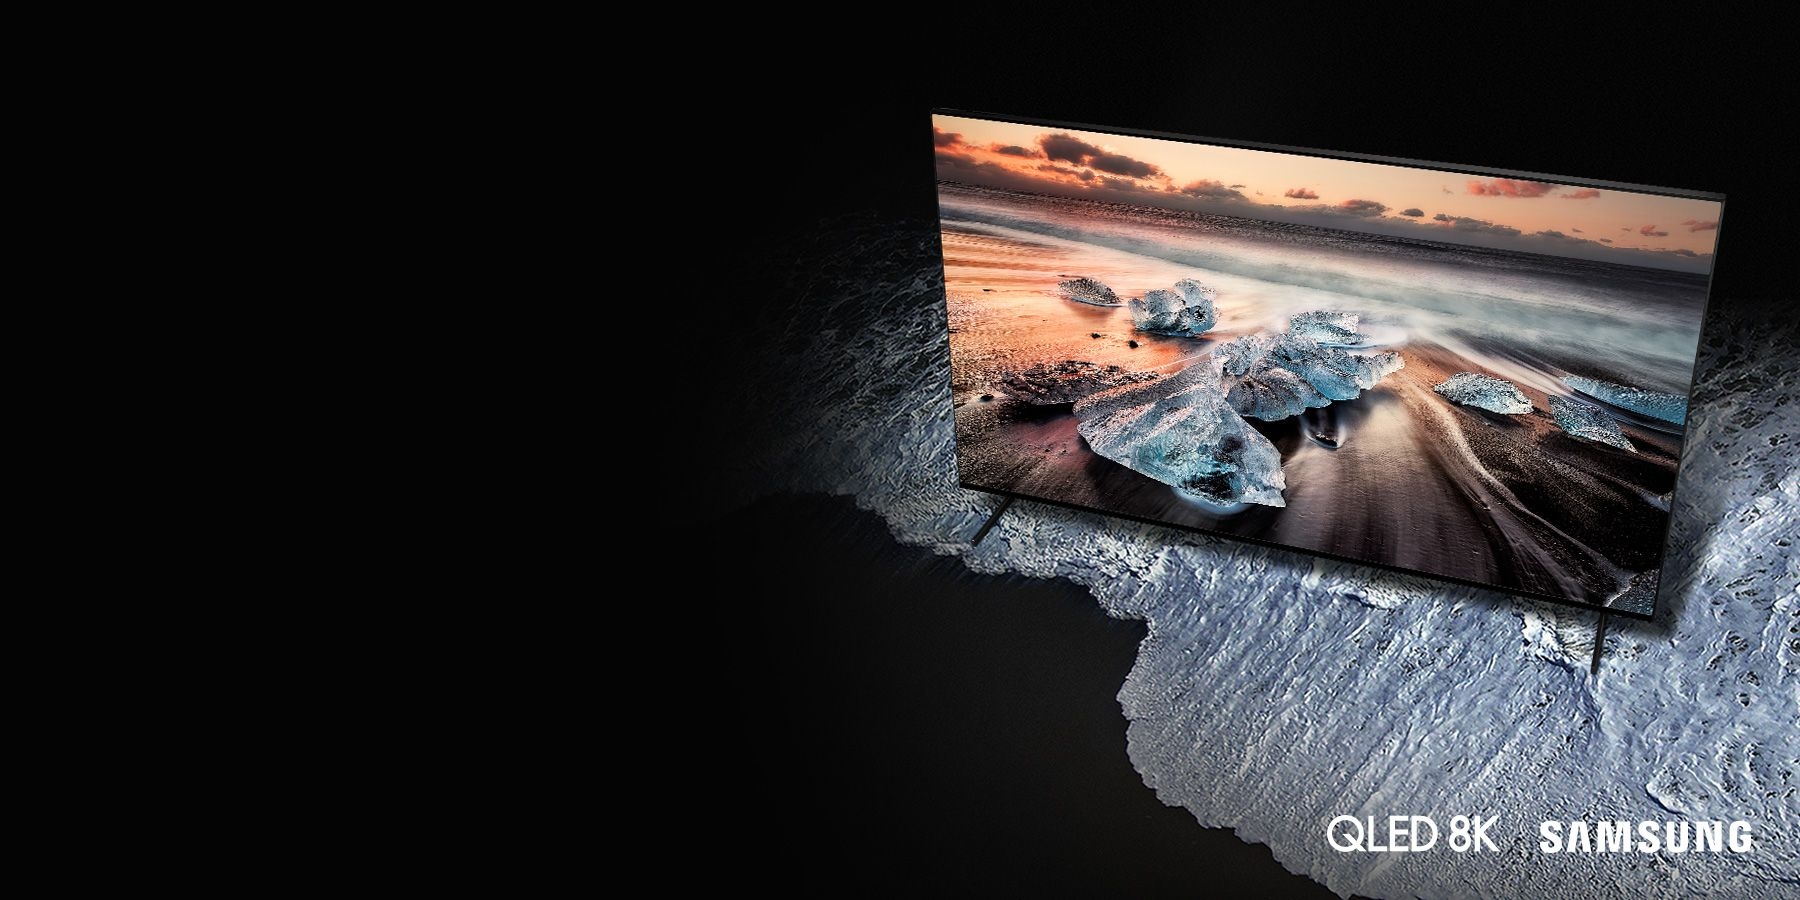 PERFECT REALITY Samsung Qled 8k TV